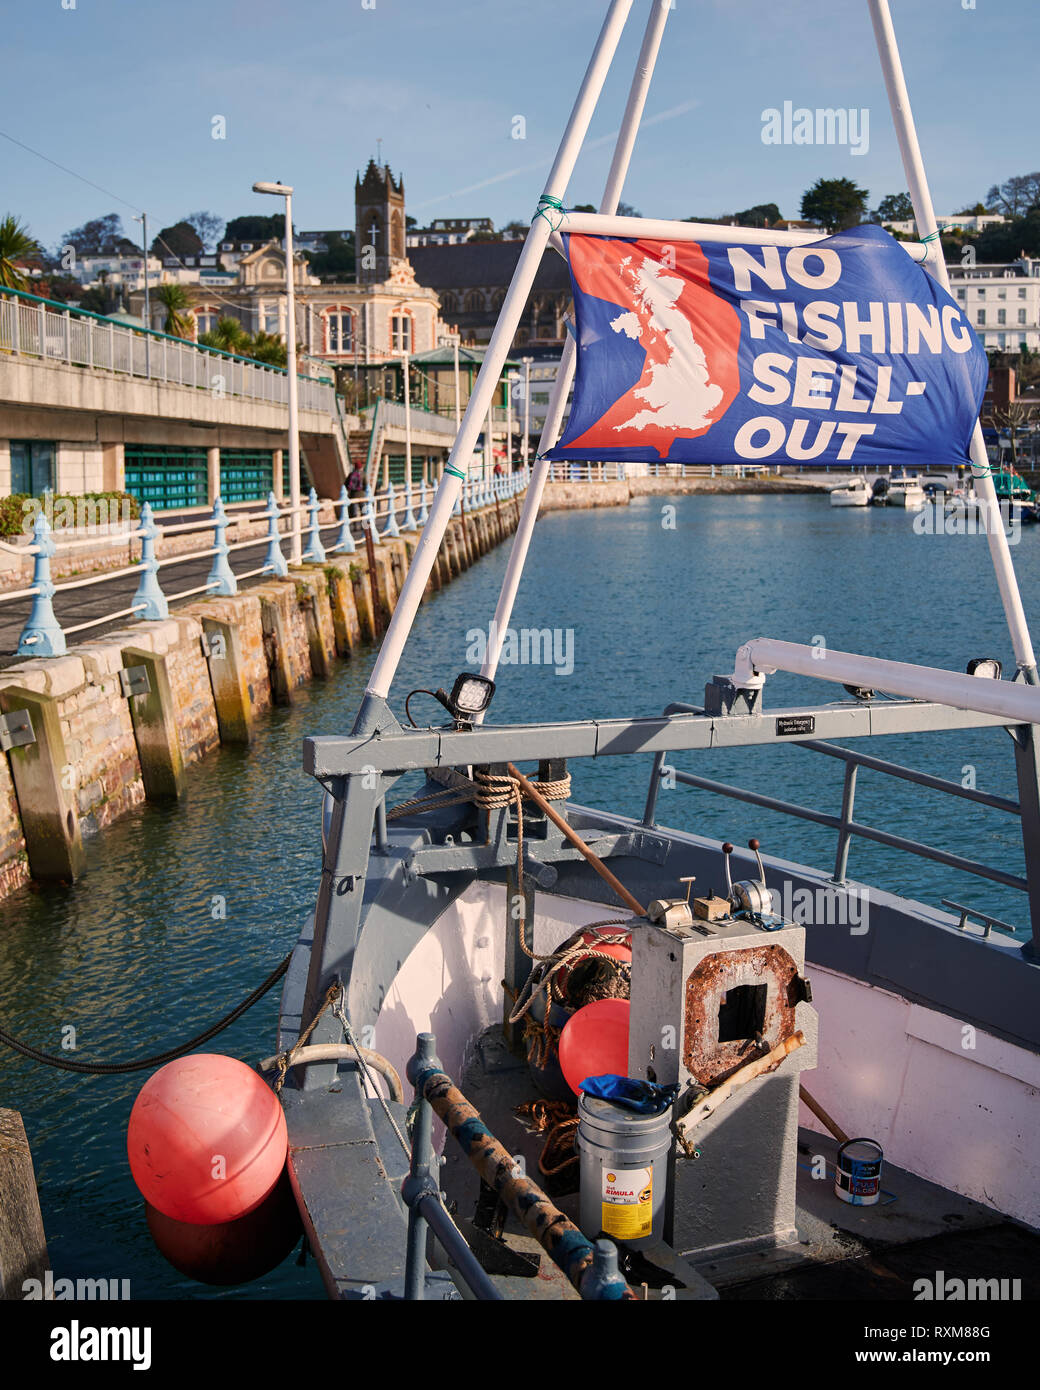 No Fishing Sell Out. A banner flown from the bow of a fishing trawler. - Stock Image